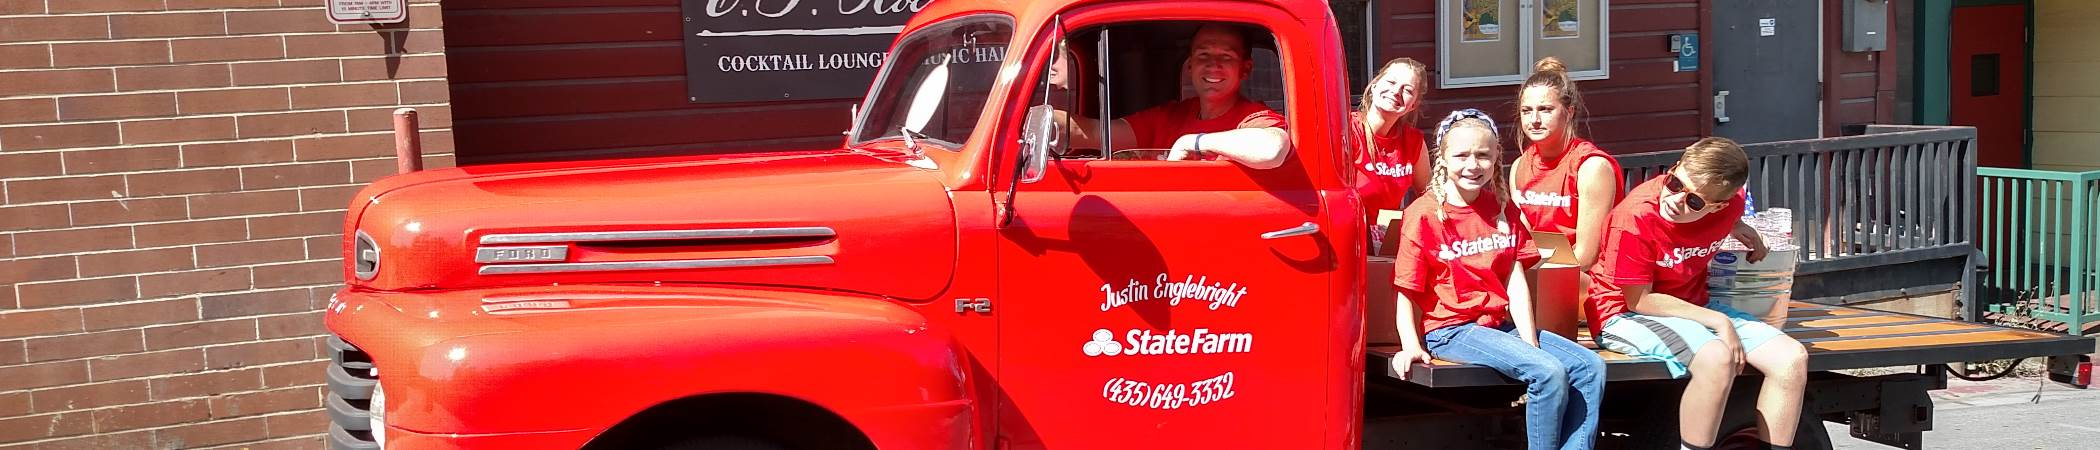 Justin Englebright State Farm Insurance in Park City, UT | Home, Auto Insurance & more